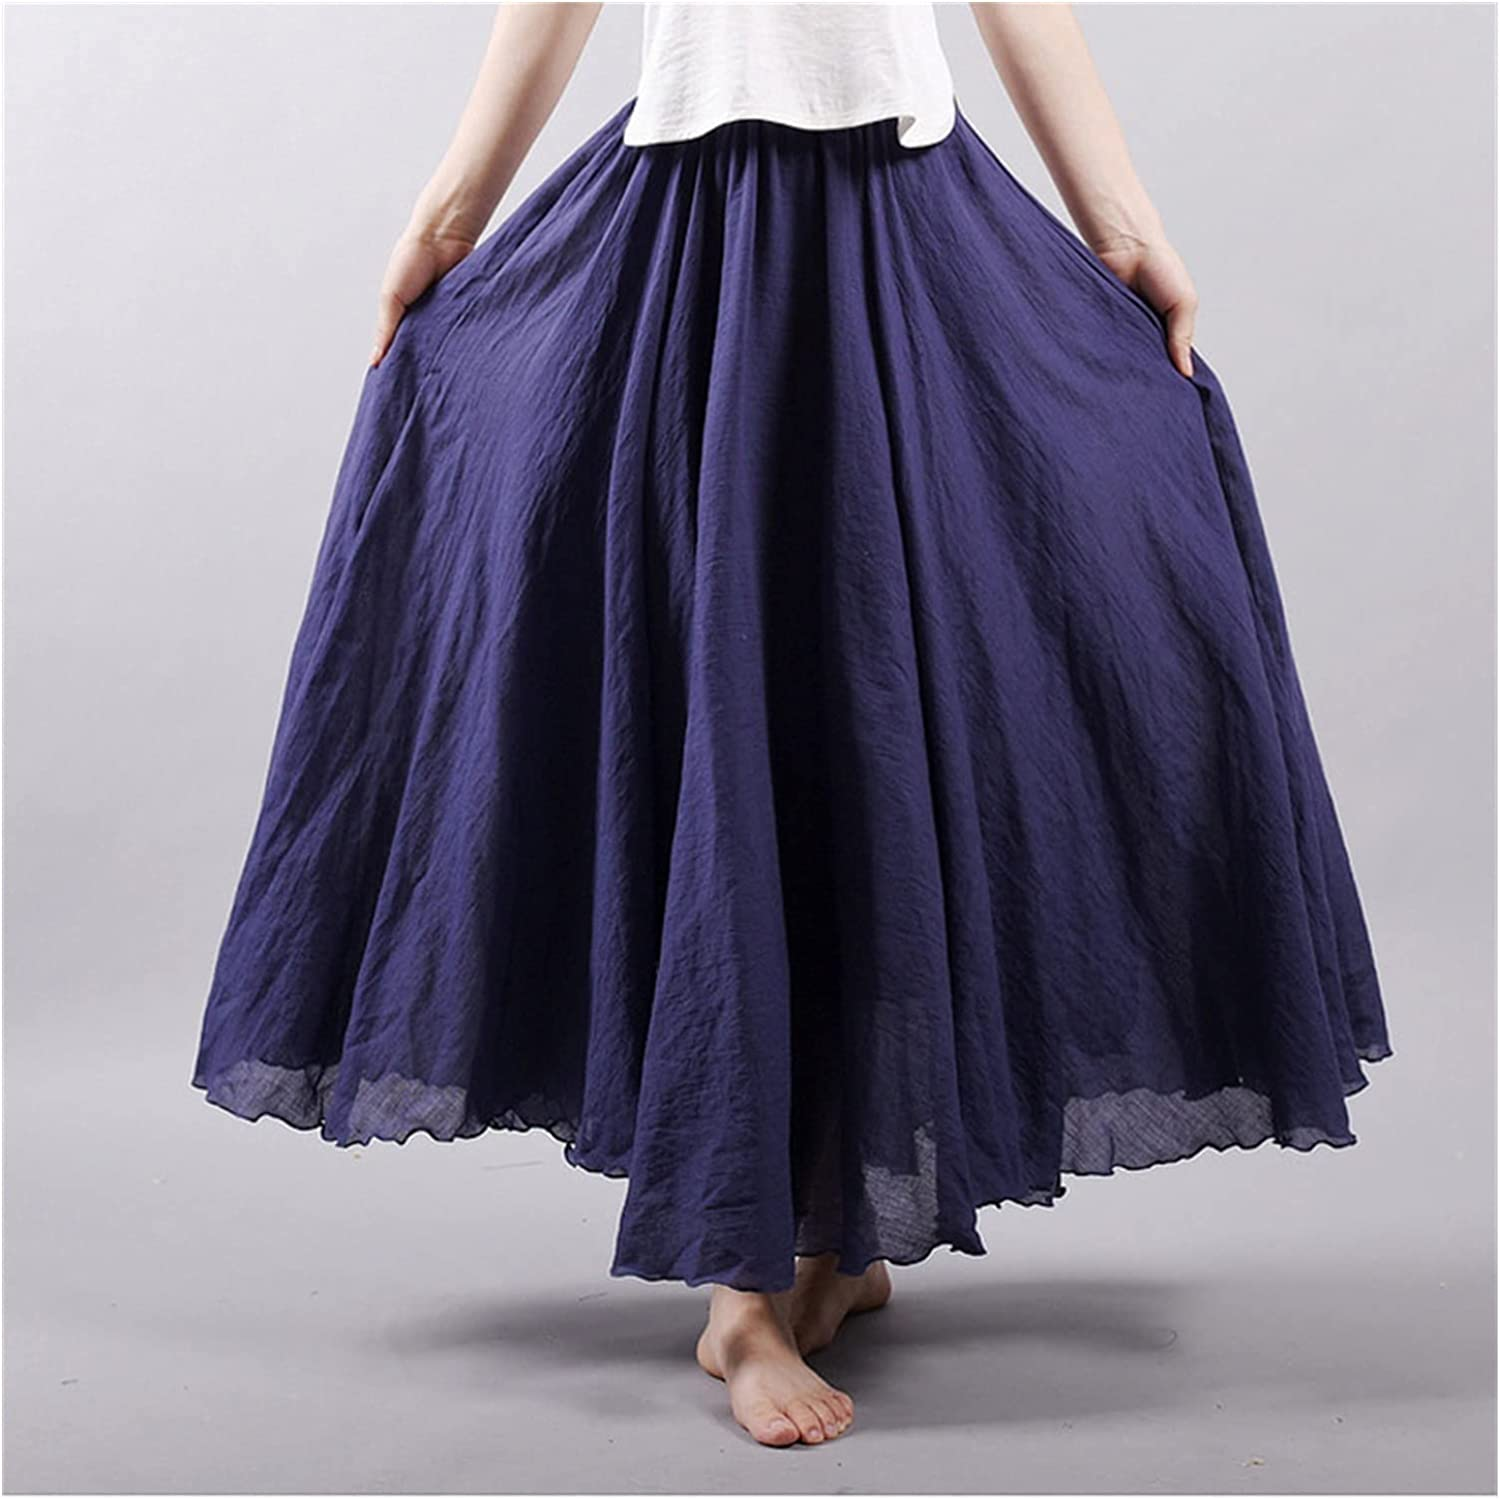 Uongfi Challenge the lowest price Wedding Dresses for Bride Skirts Long Women Linen Max 87% OFF Cotton